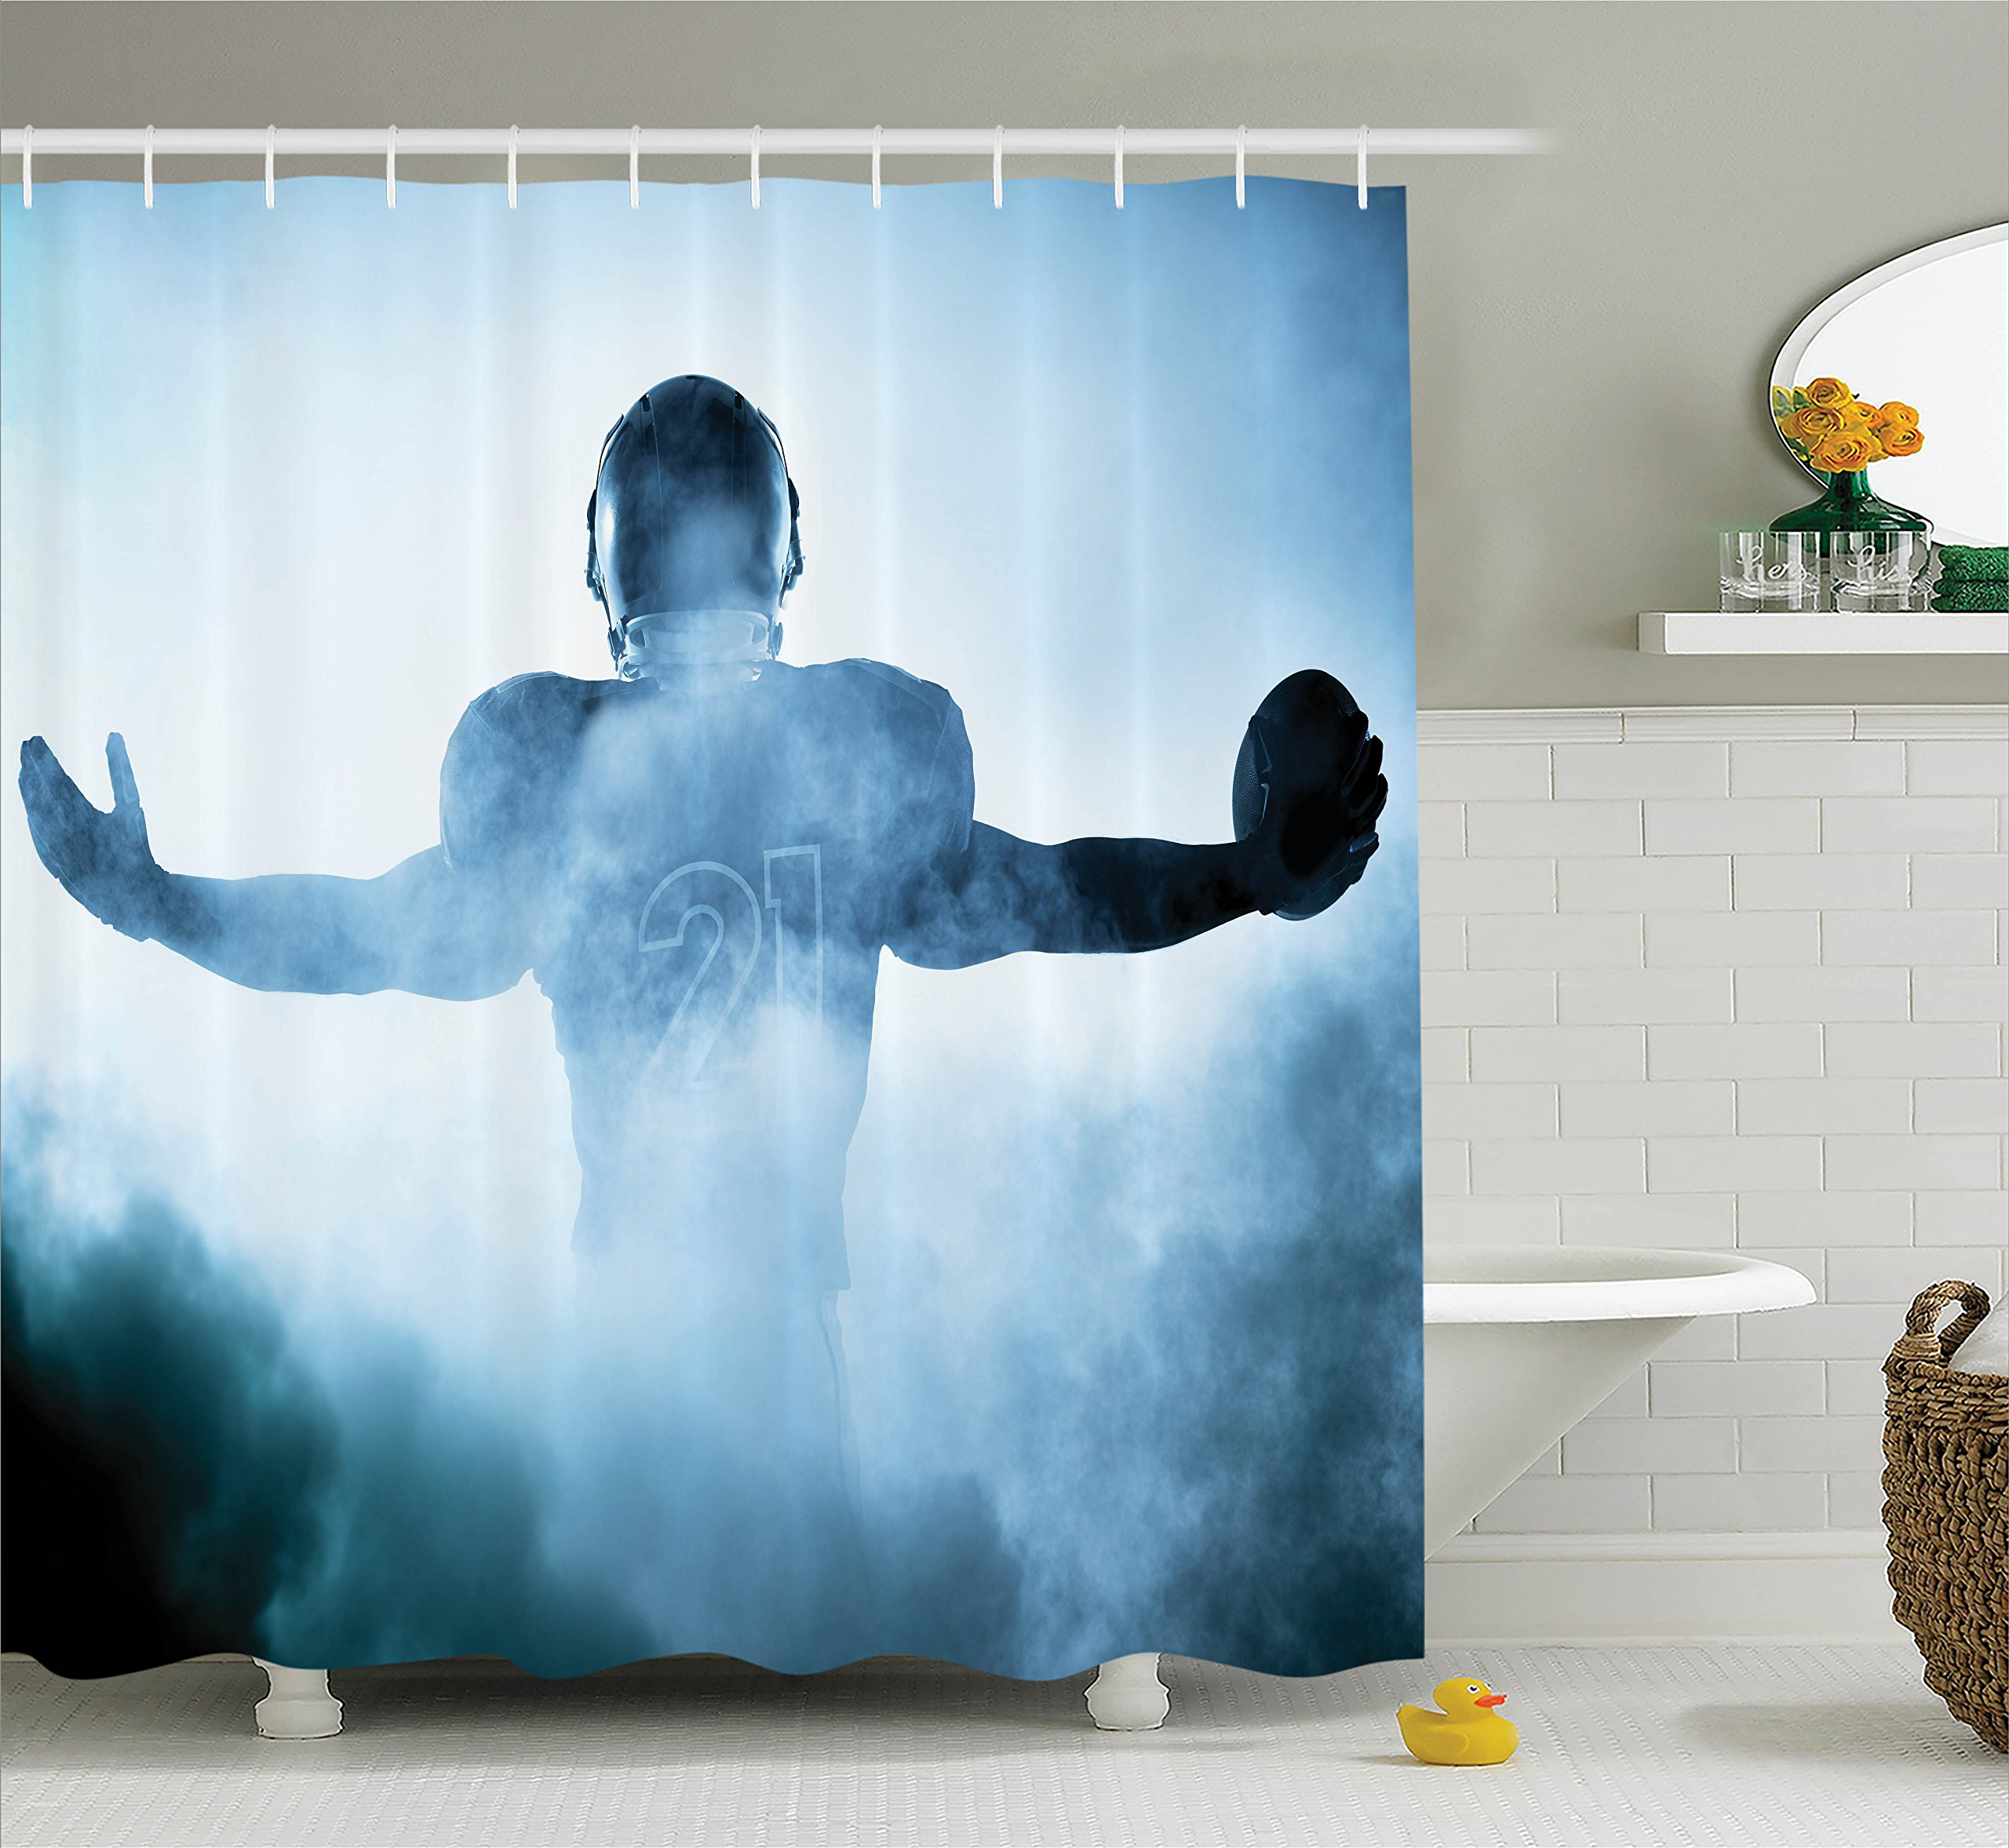 Ambesonne Football Decor Shower Curtain Set, Heroic Shaped Rugby Player Silhouette Shadow Standing in Fog Playground Global Sports Photo, Bathroom Accessories, 69W X 70L inches, Blue